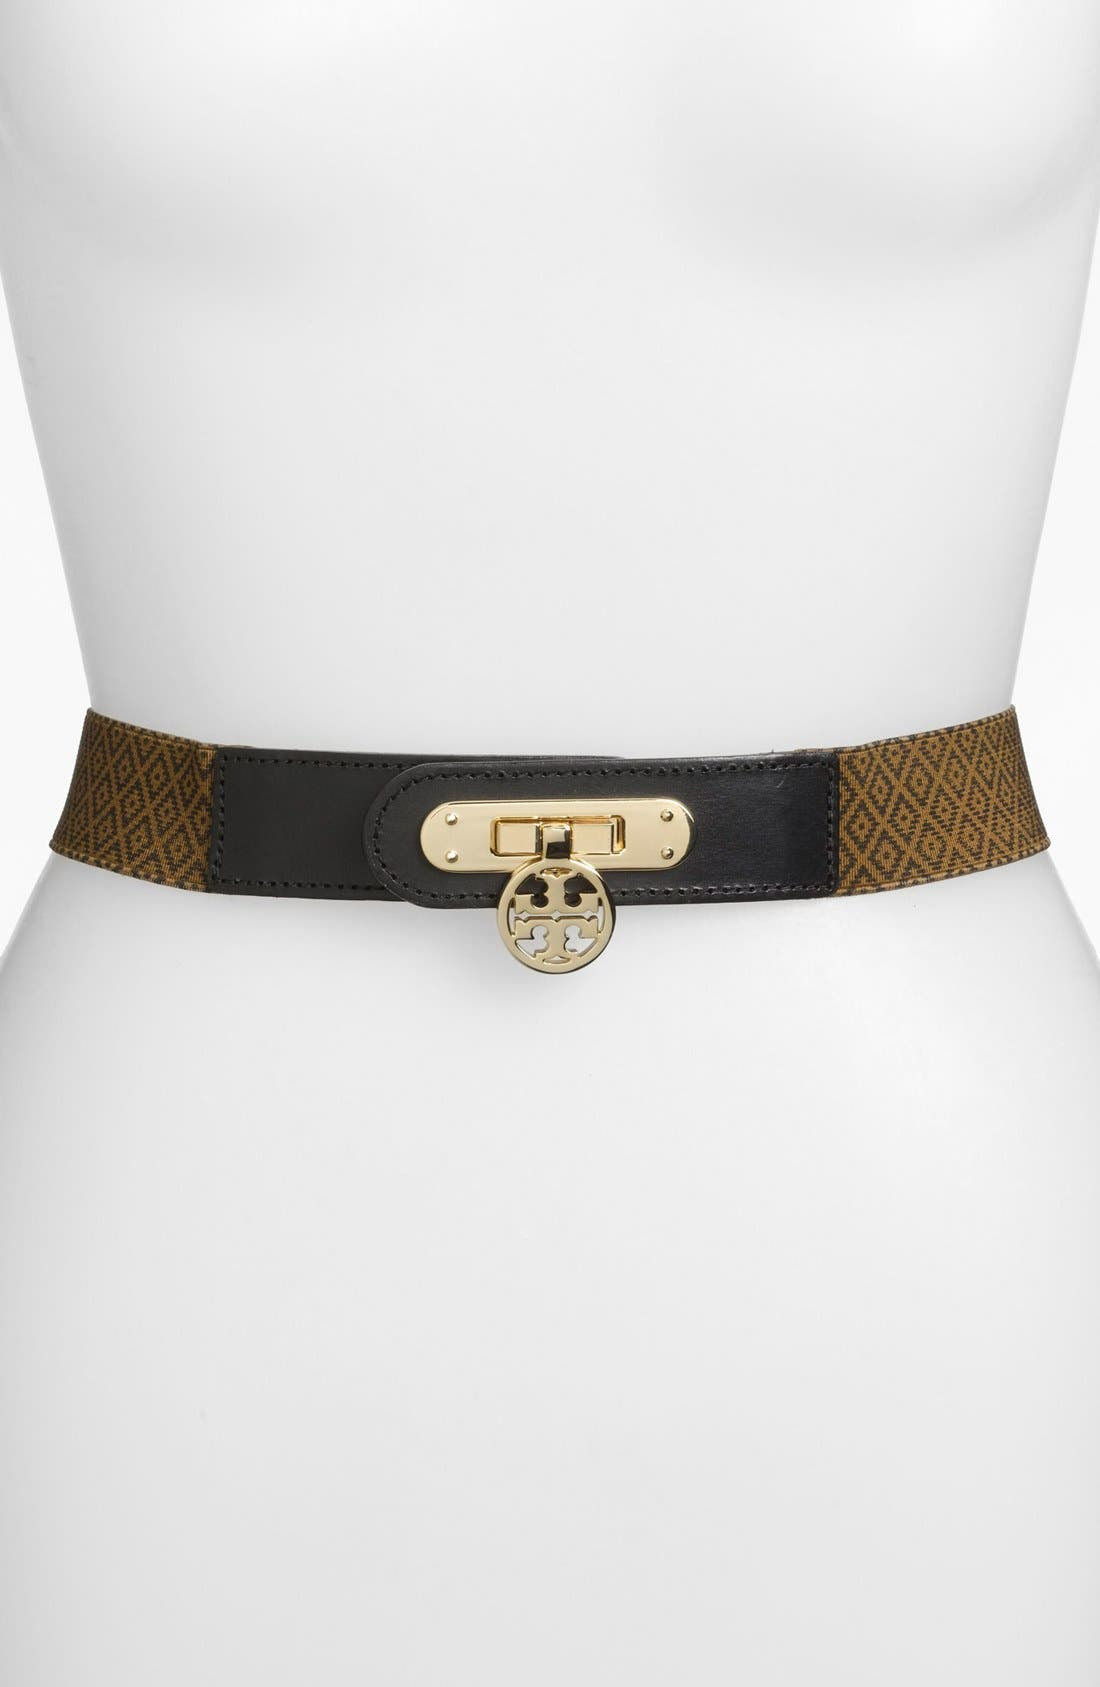 Main Image - Tory Burch 'Daria' Printed Stretch Belt